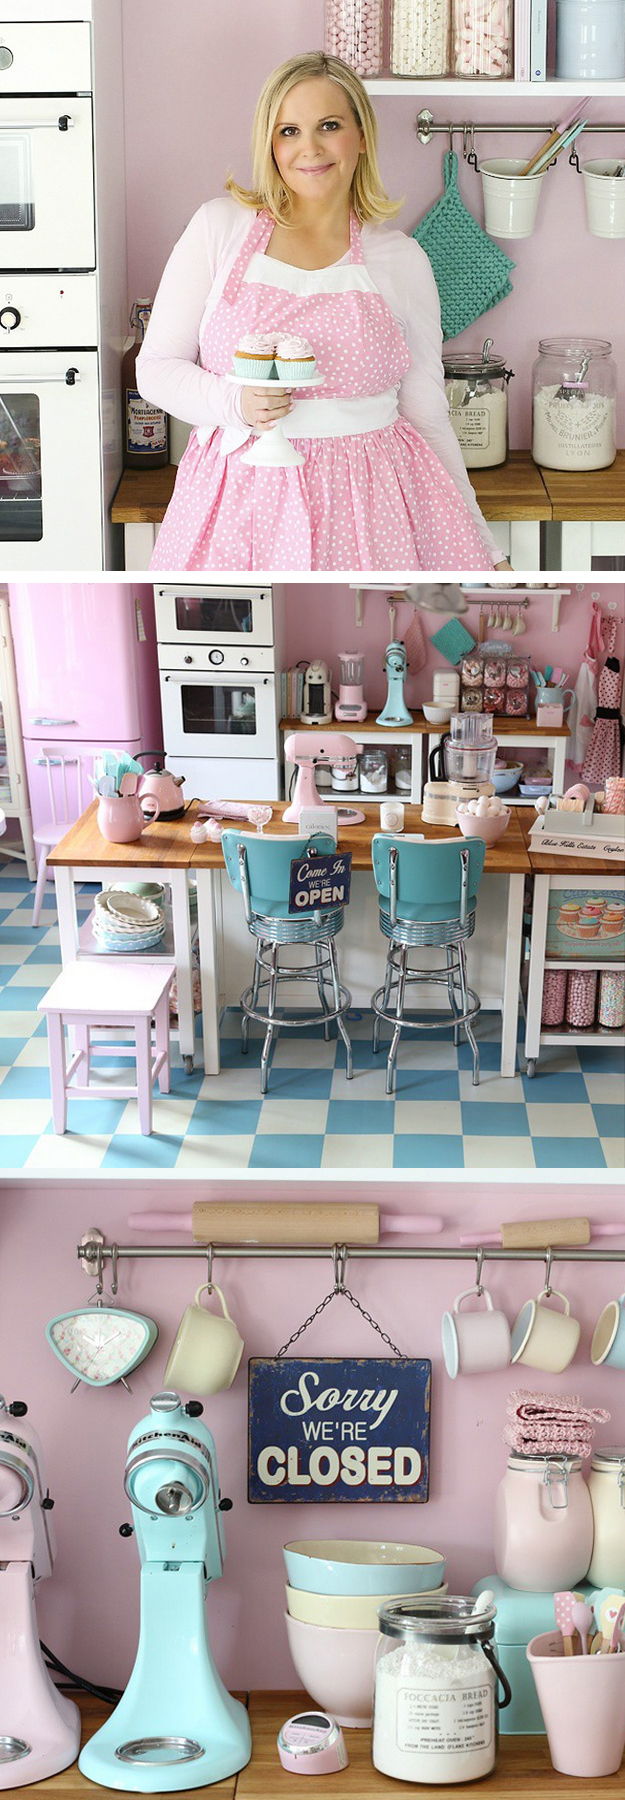 Passion For Baking kitchen